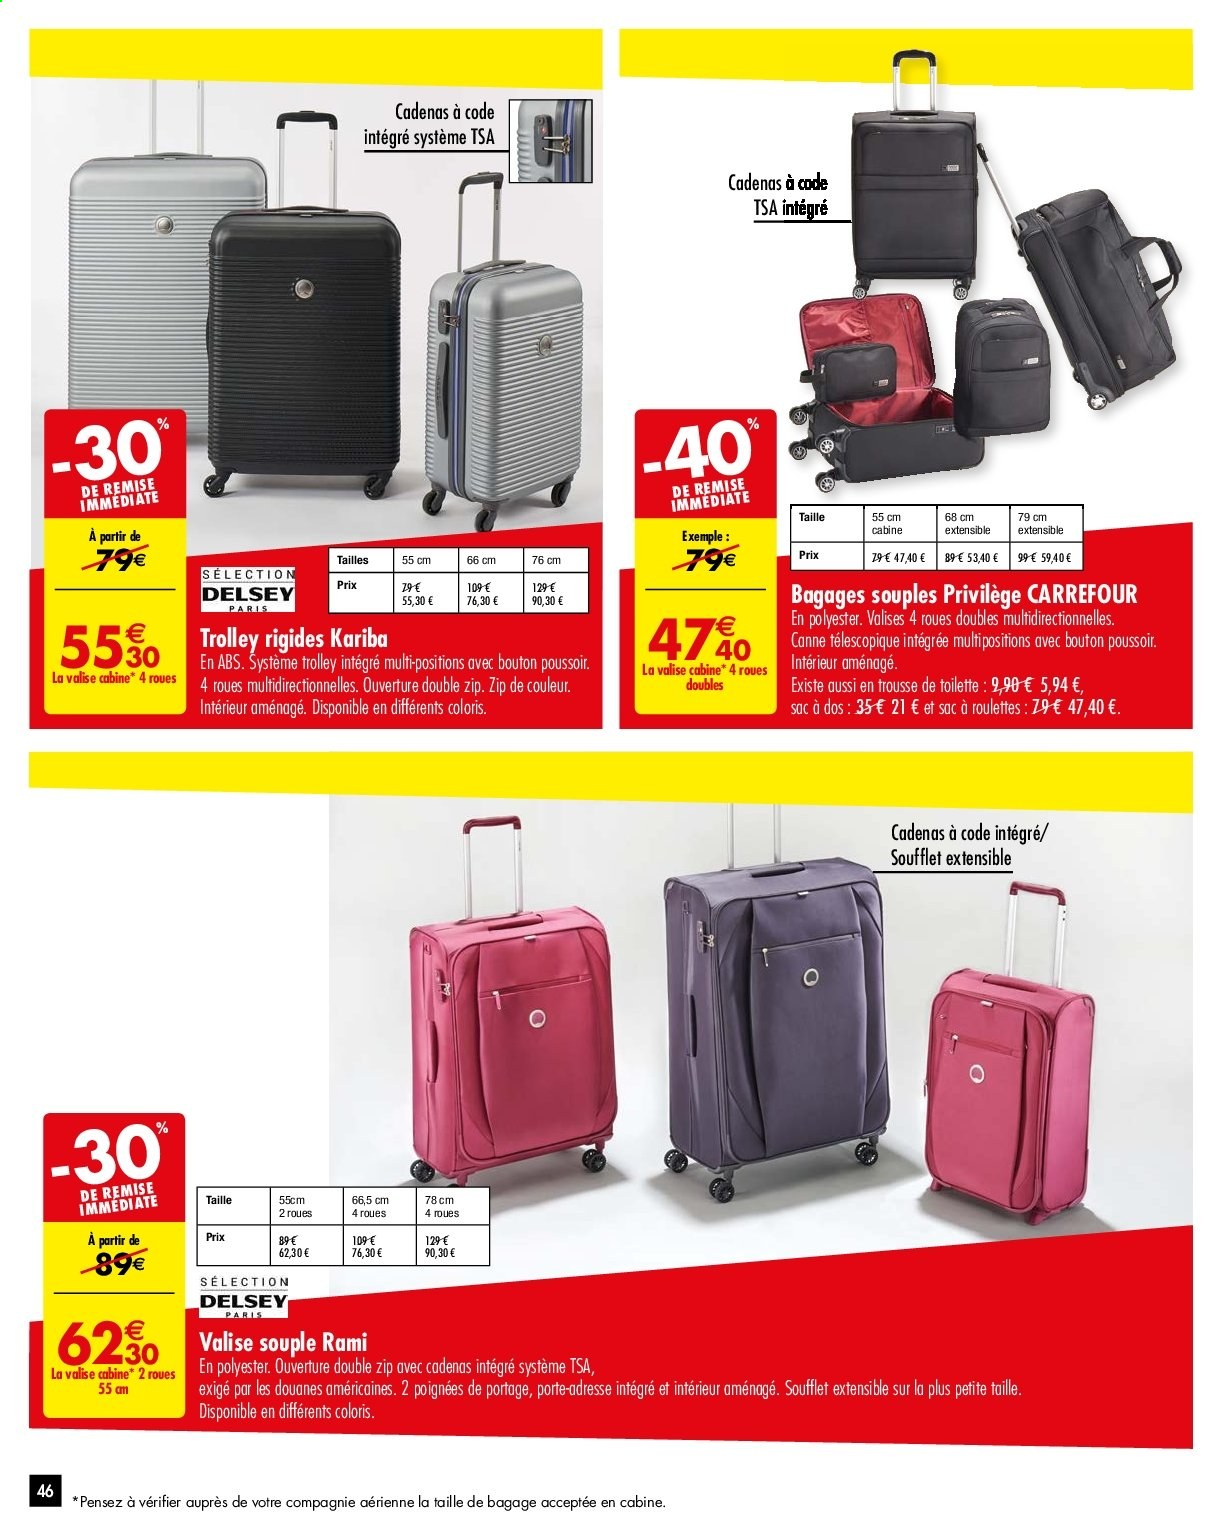 d34b4afe4d Catalogue Carrefour - 14.05.2019 - 27.05.2019 - Produits soldés - trolley,